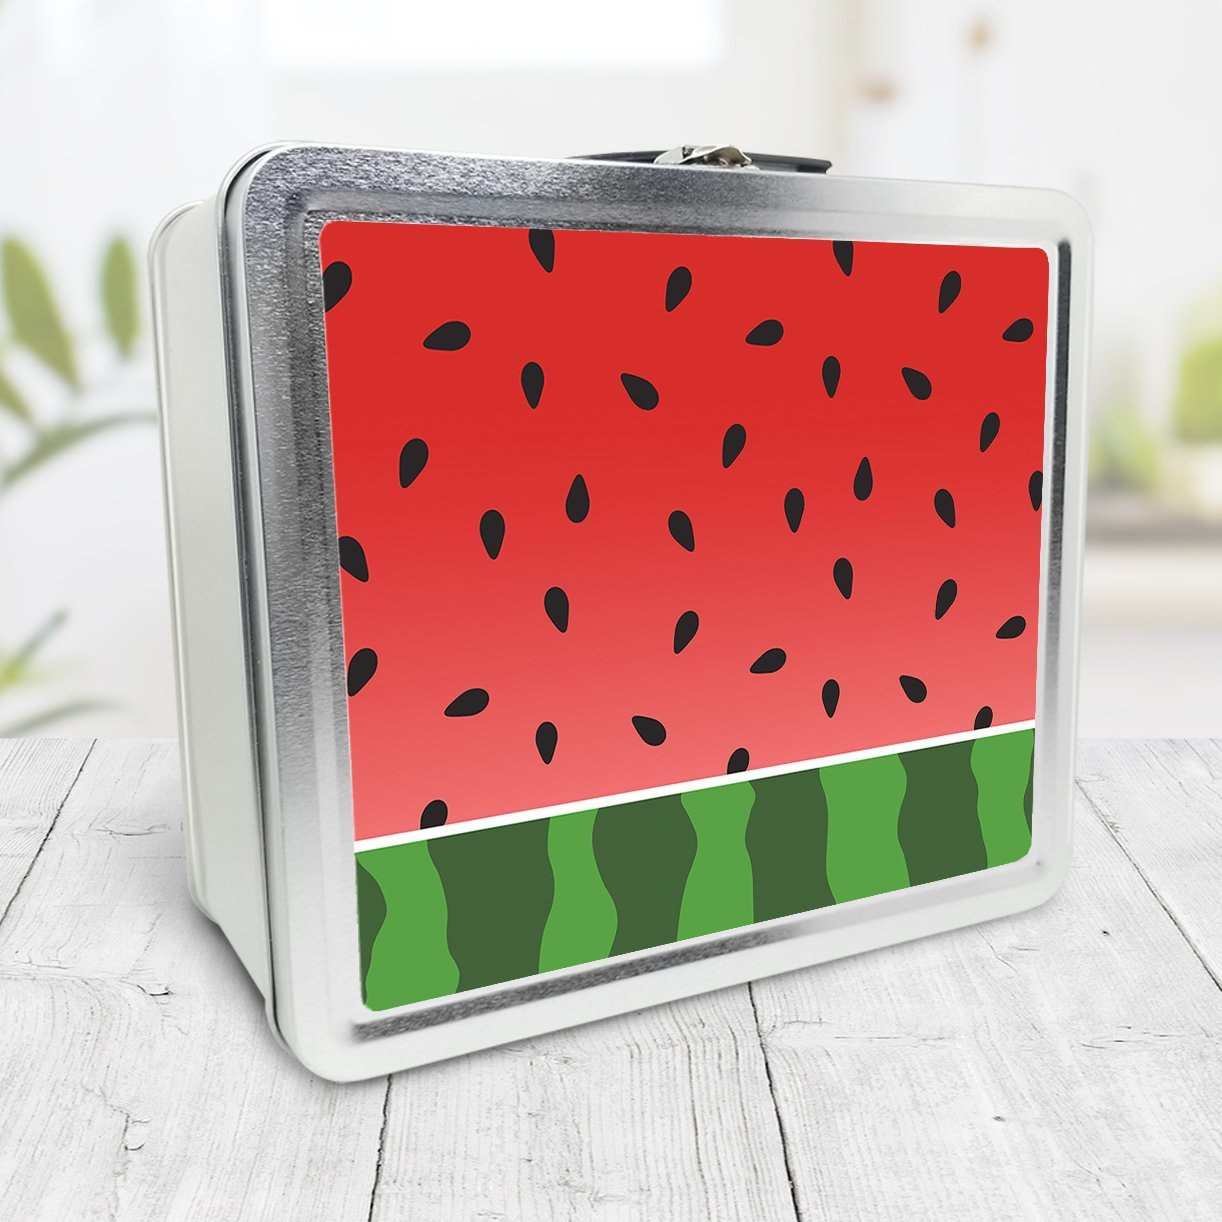 Watermelon Lunch Box at Speckle Rock